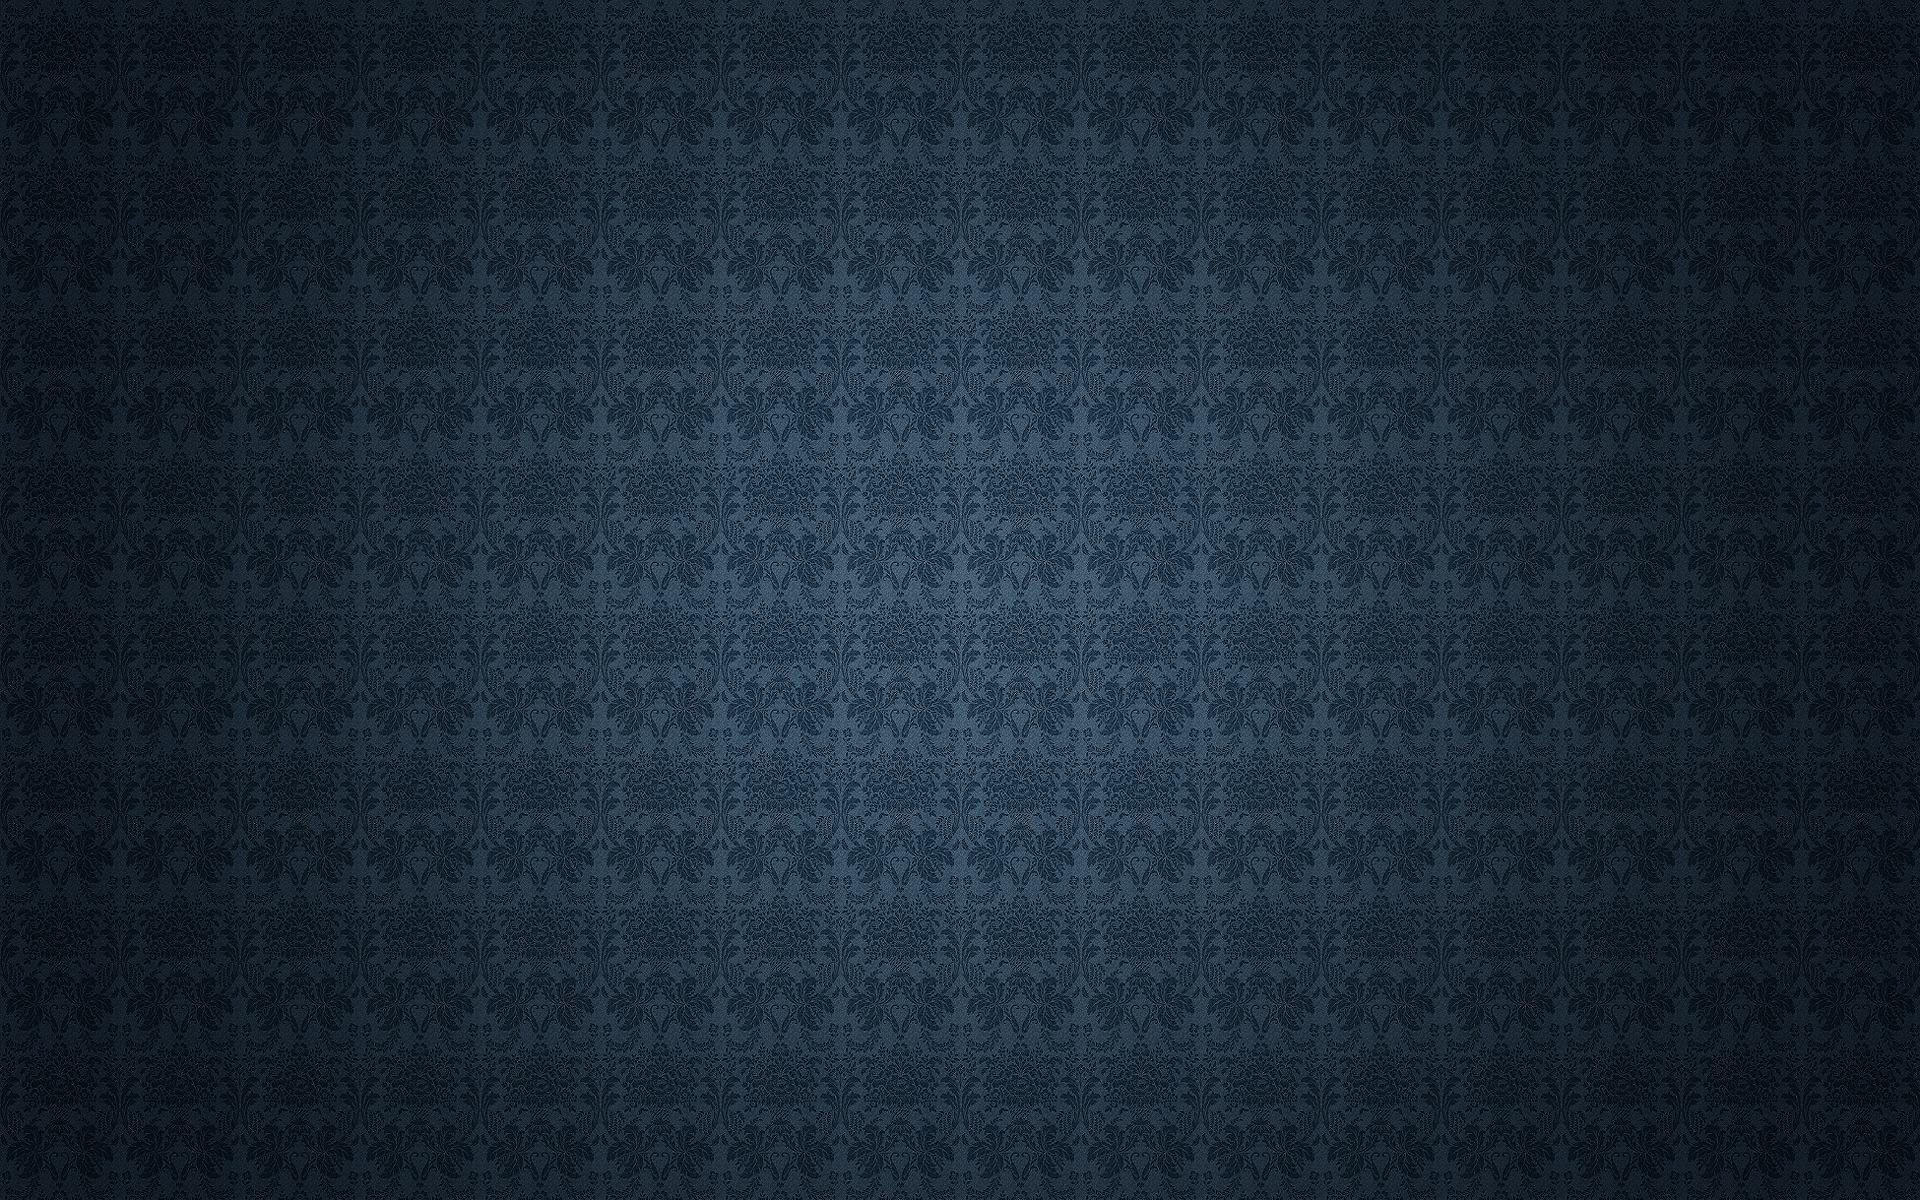 Hd 3d Wallpapers For Iphone 6 1080p 34 Textured Backgrounds 183 ① Download Free Awesome